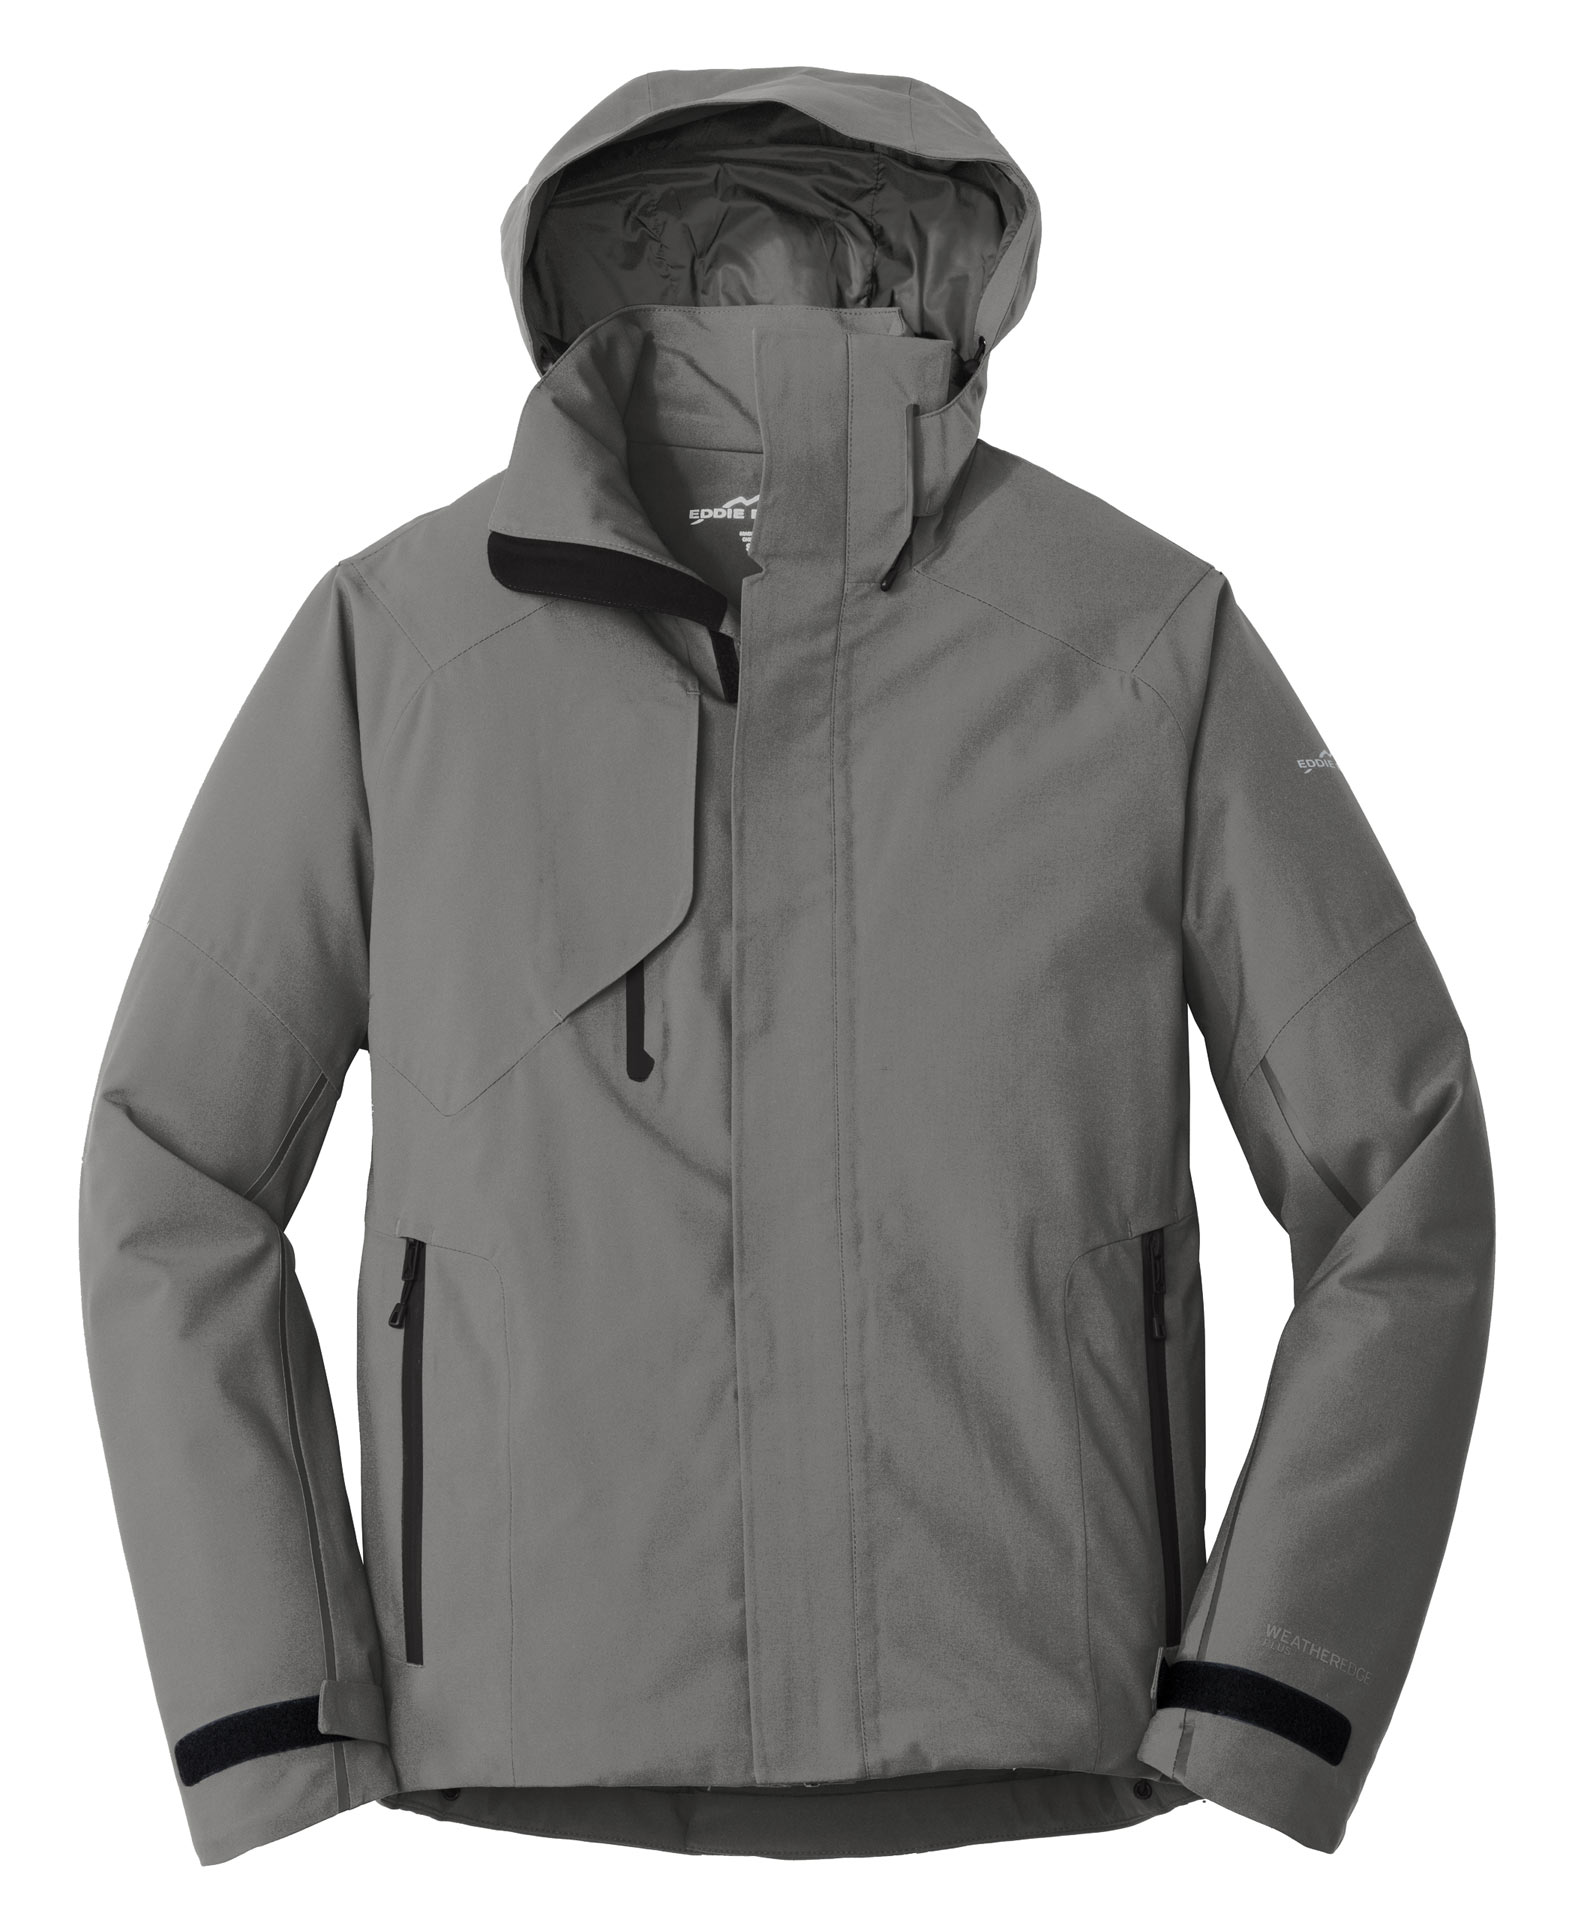 a99944805bbe0 Eddie Bauer® Mens WeatherEdge® Plus Insulated Jacket - Design Online